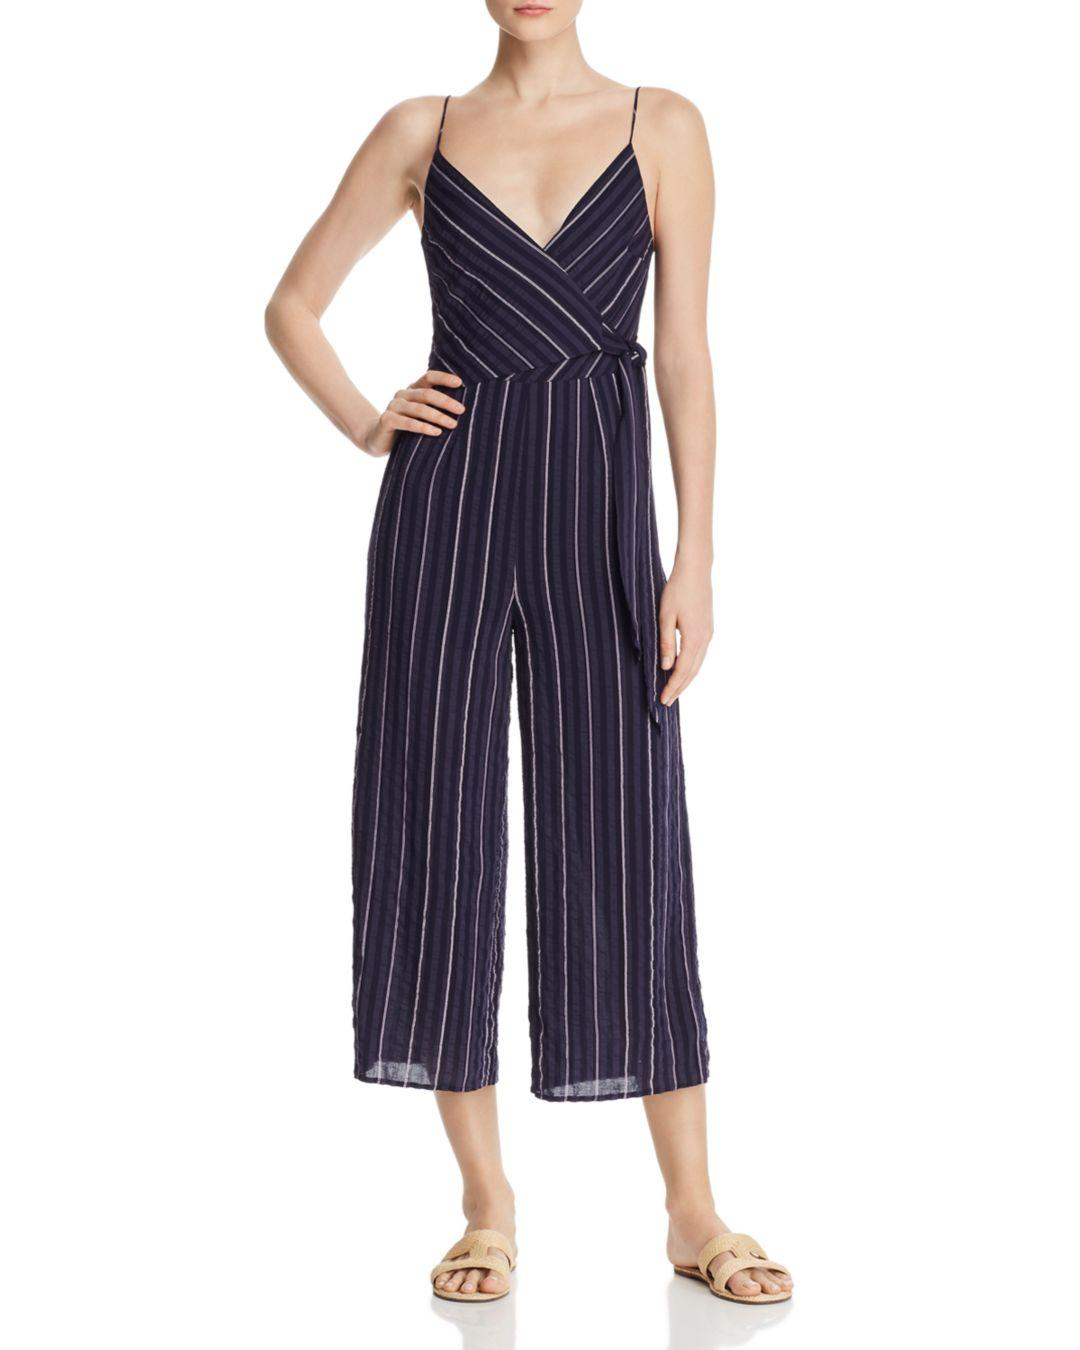 It's just a graphic of Transformative The Fifth Label Moonlit Jumpsuit